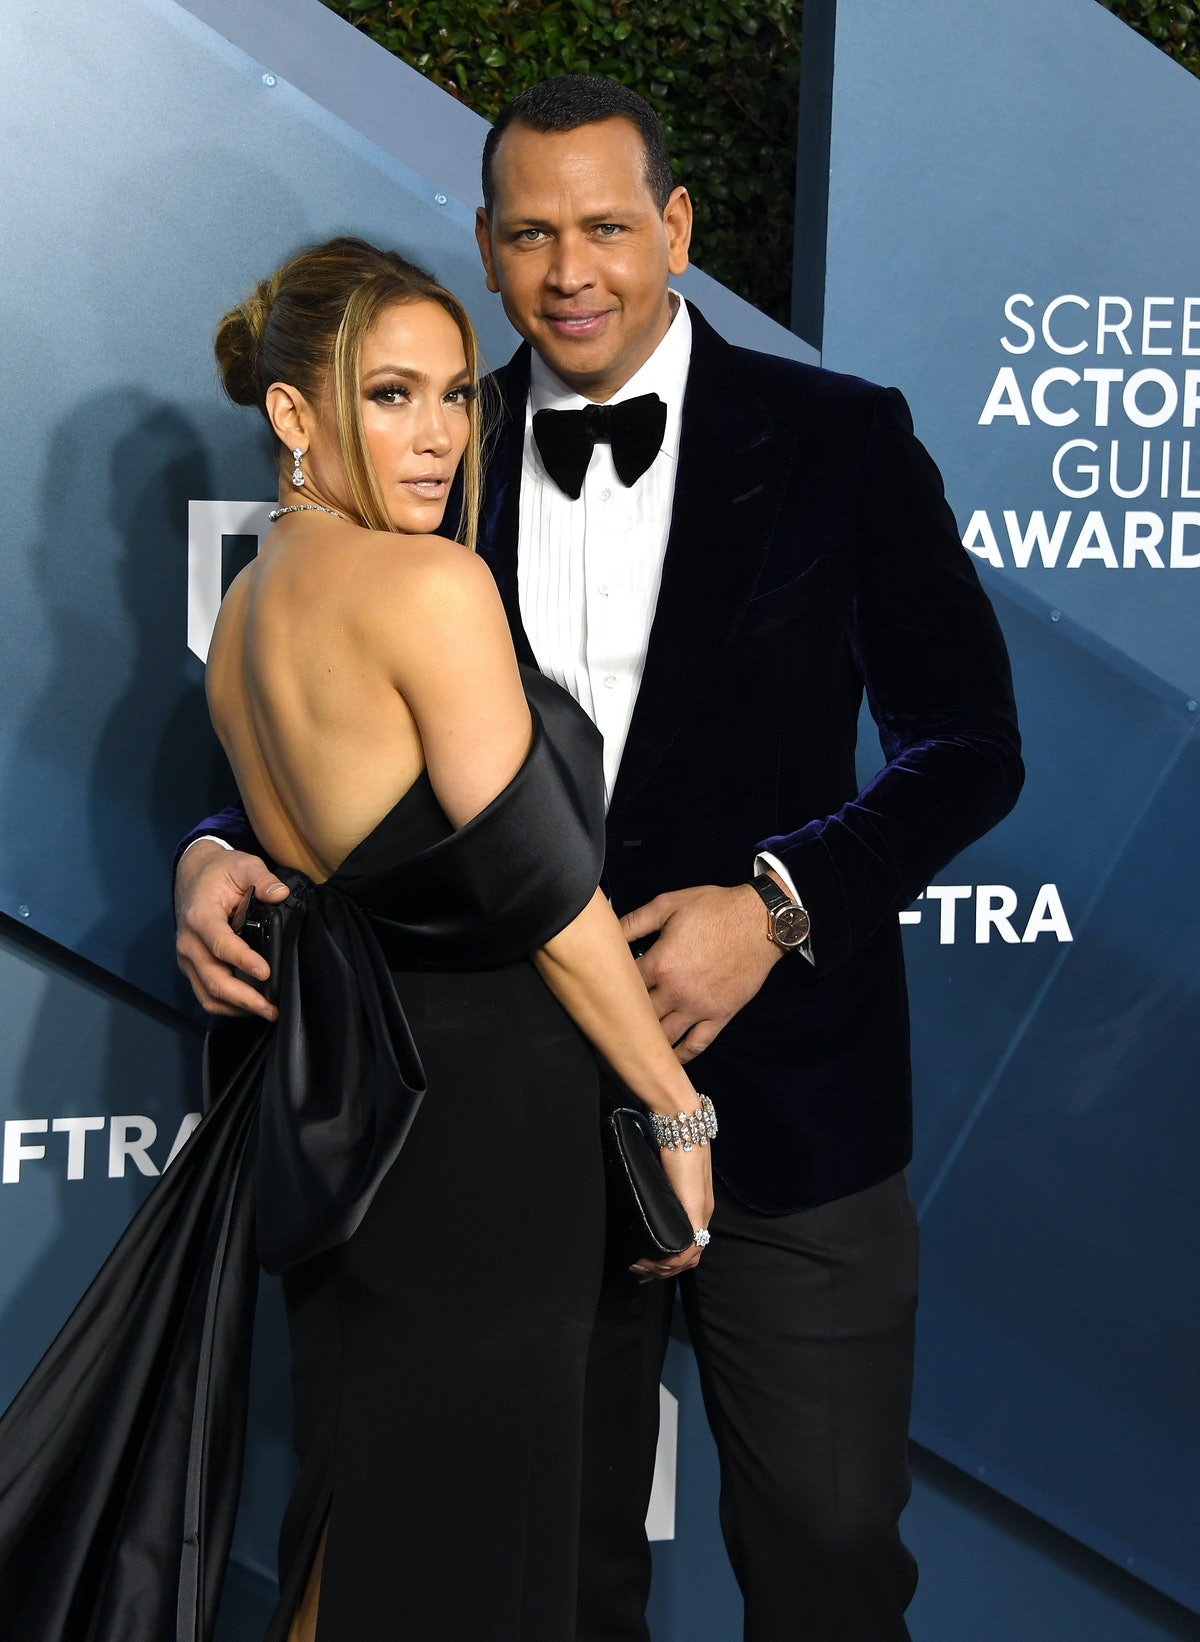 LOS ANGELES, CALIFORNIA - JANUARY 19: Jennifer Lopez and Alex Rodriguez arrives at the 26th Annual S...